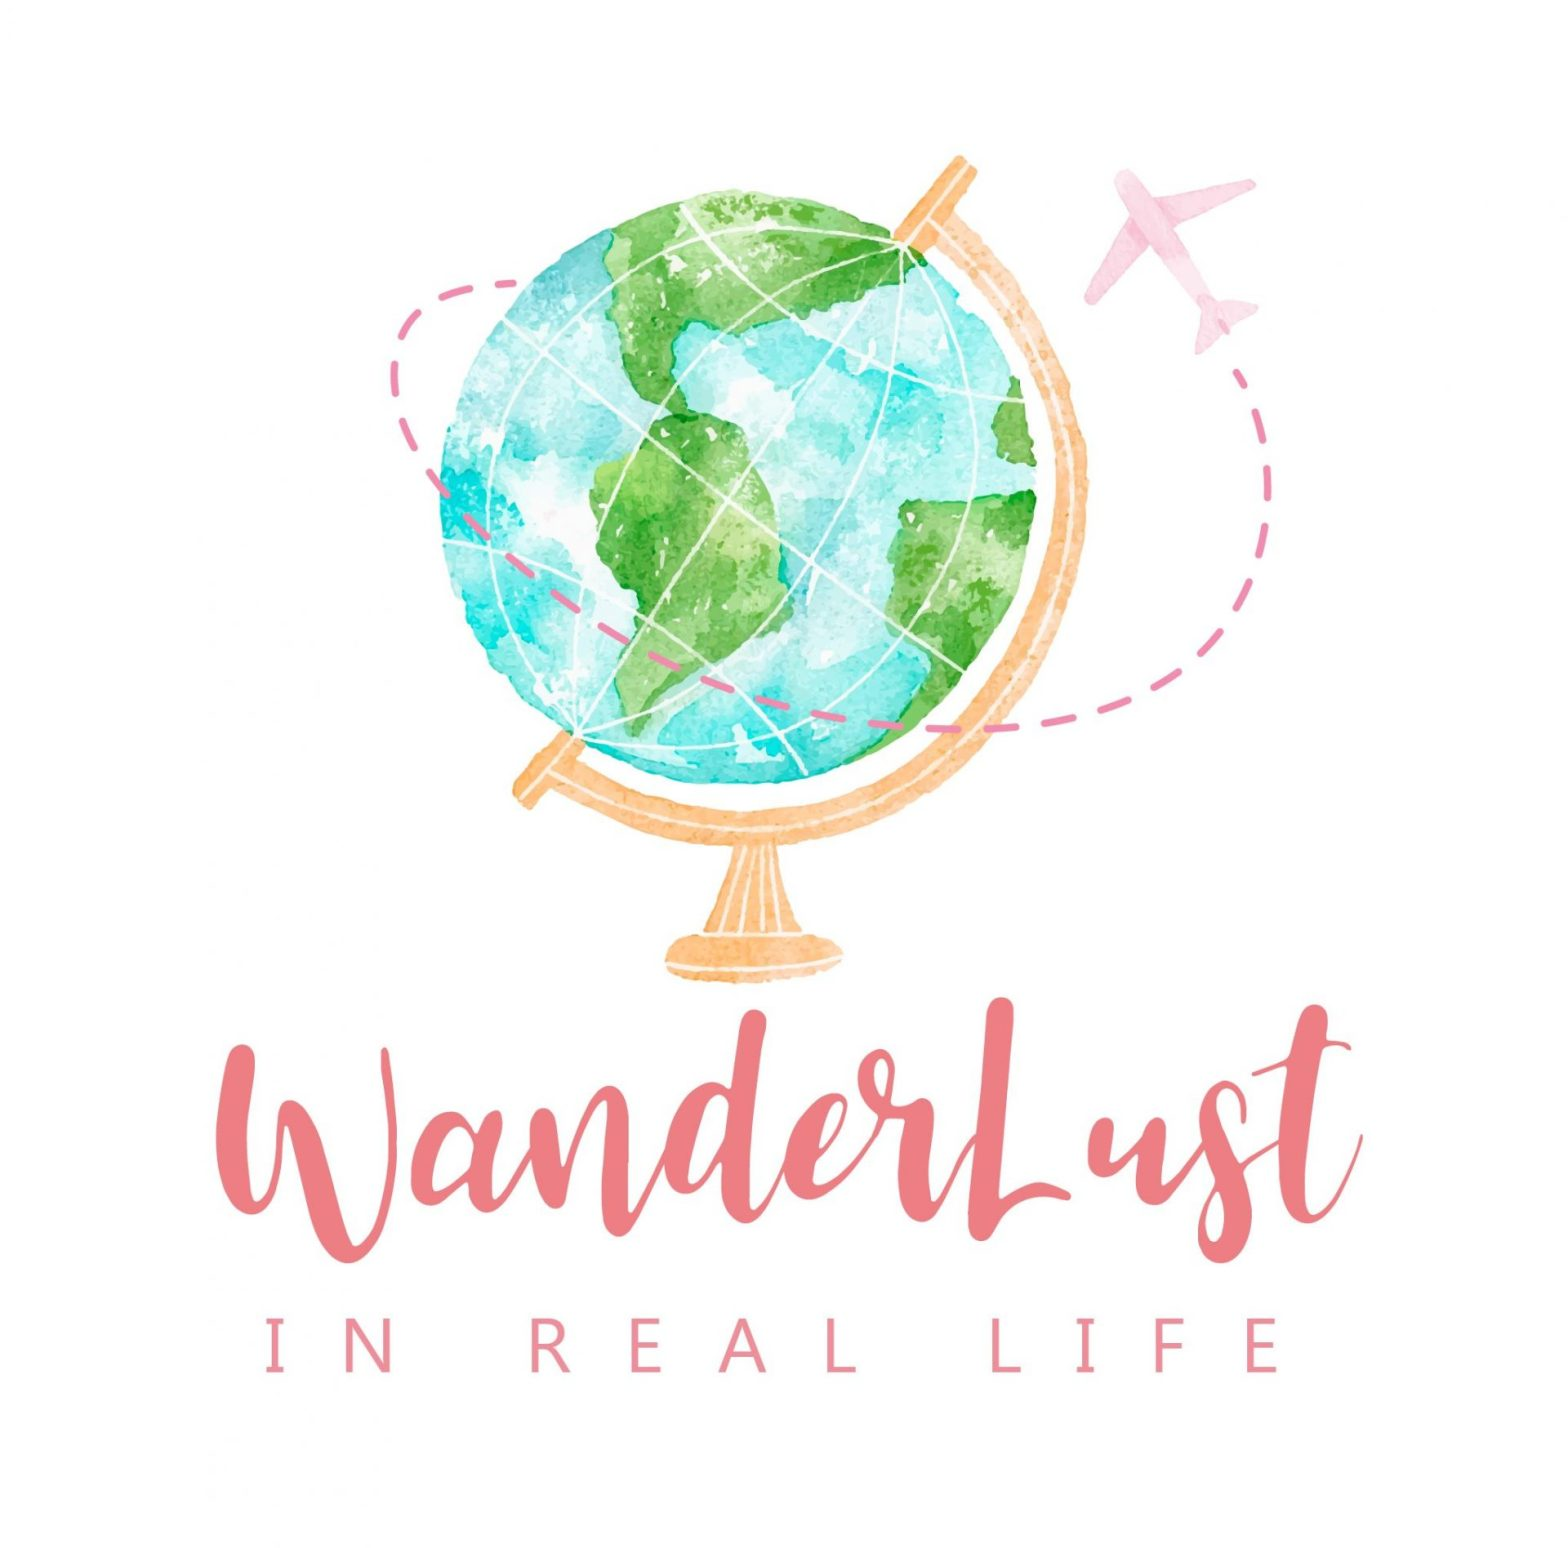 Wanderlust in real life logo featuring a pastel blue and green globe on a gold stand with a pink airplane circling around the globe